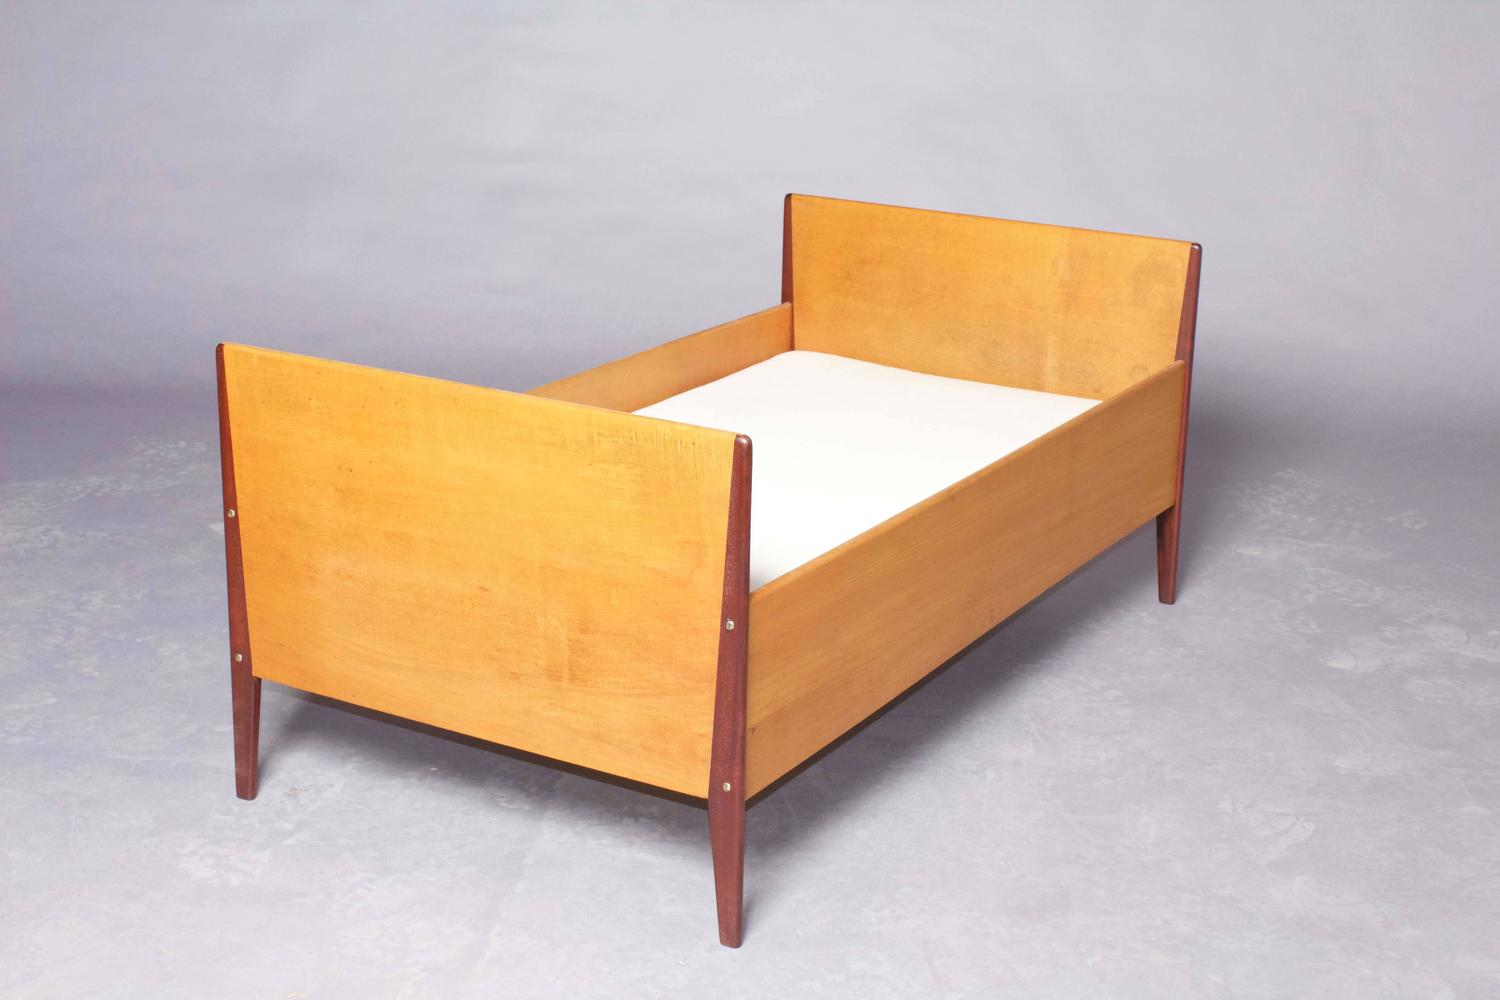 Peder moos children 39 s bed 1937 one of a kind for sale at for One of a kind beds